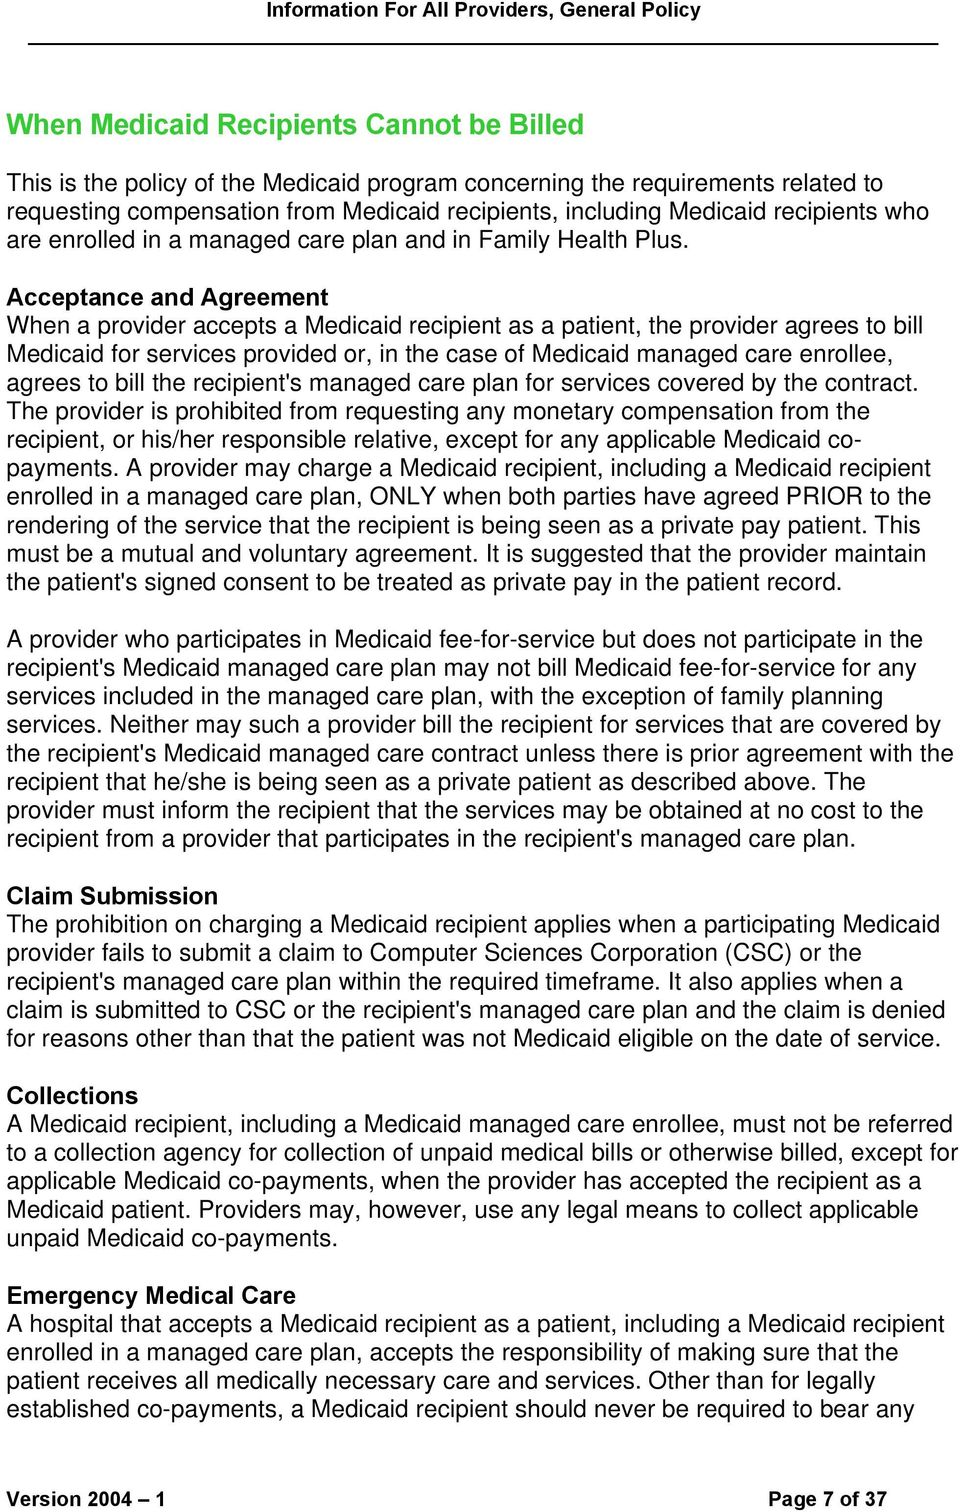 Acceptance and Agreement When a provider accepts a Medicaid recipient as a patient, the provider agrees to bill Medicaid for services provided or, in the case of Medicaid managed care enrollee,